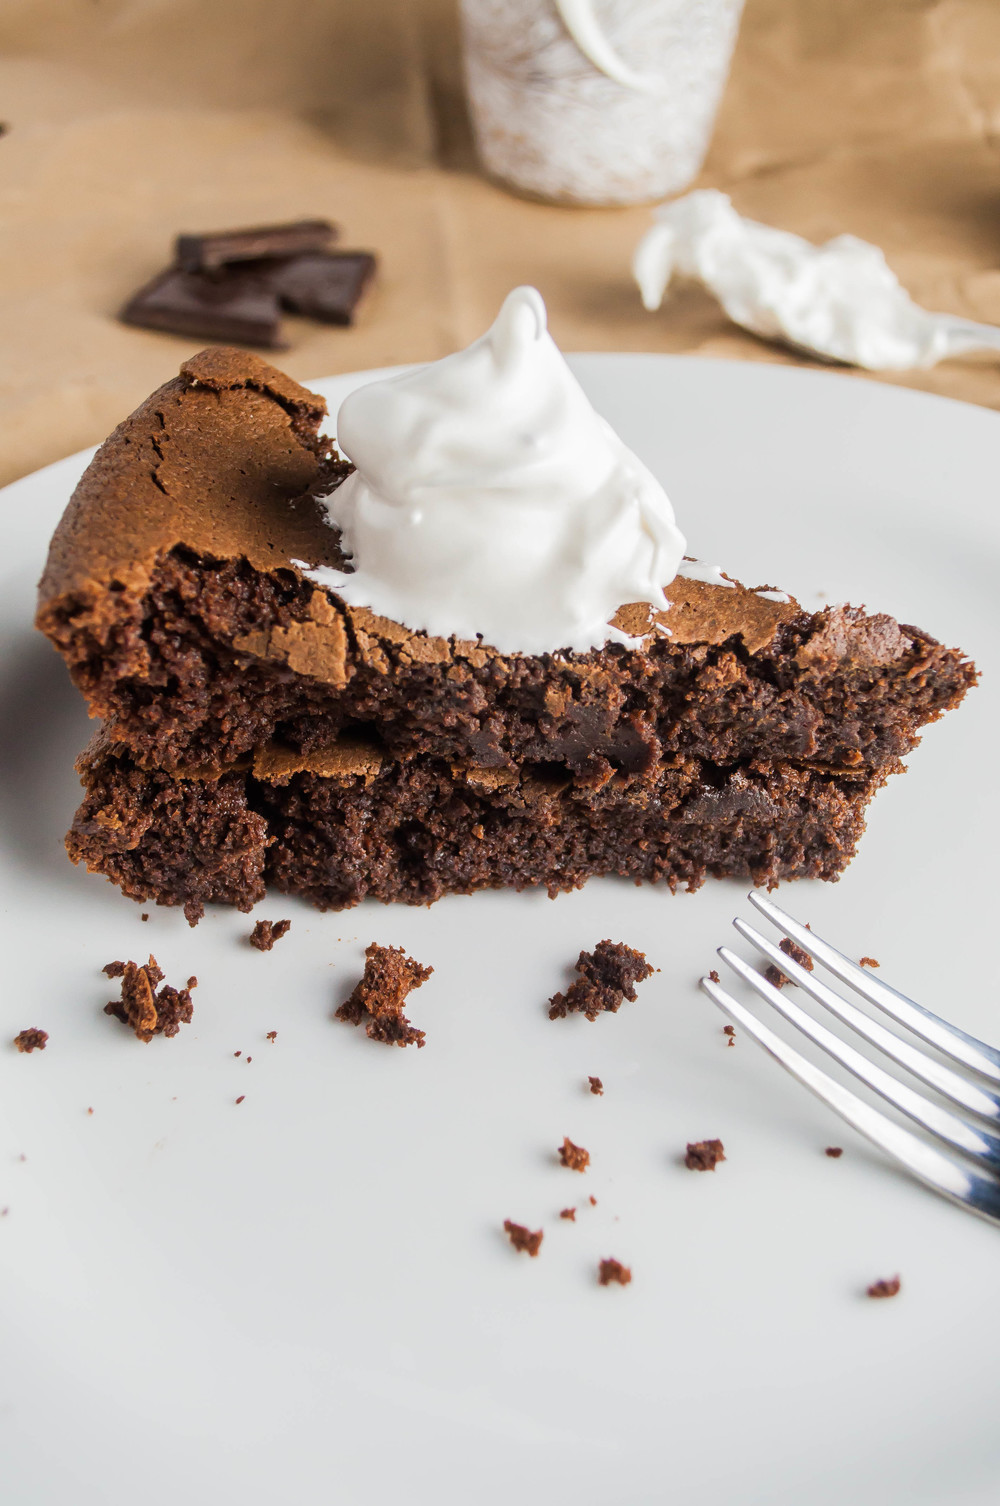 The Healthiest Chocolate Cake